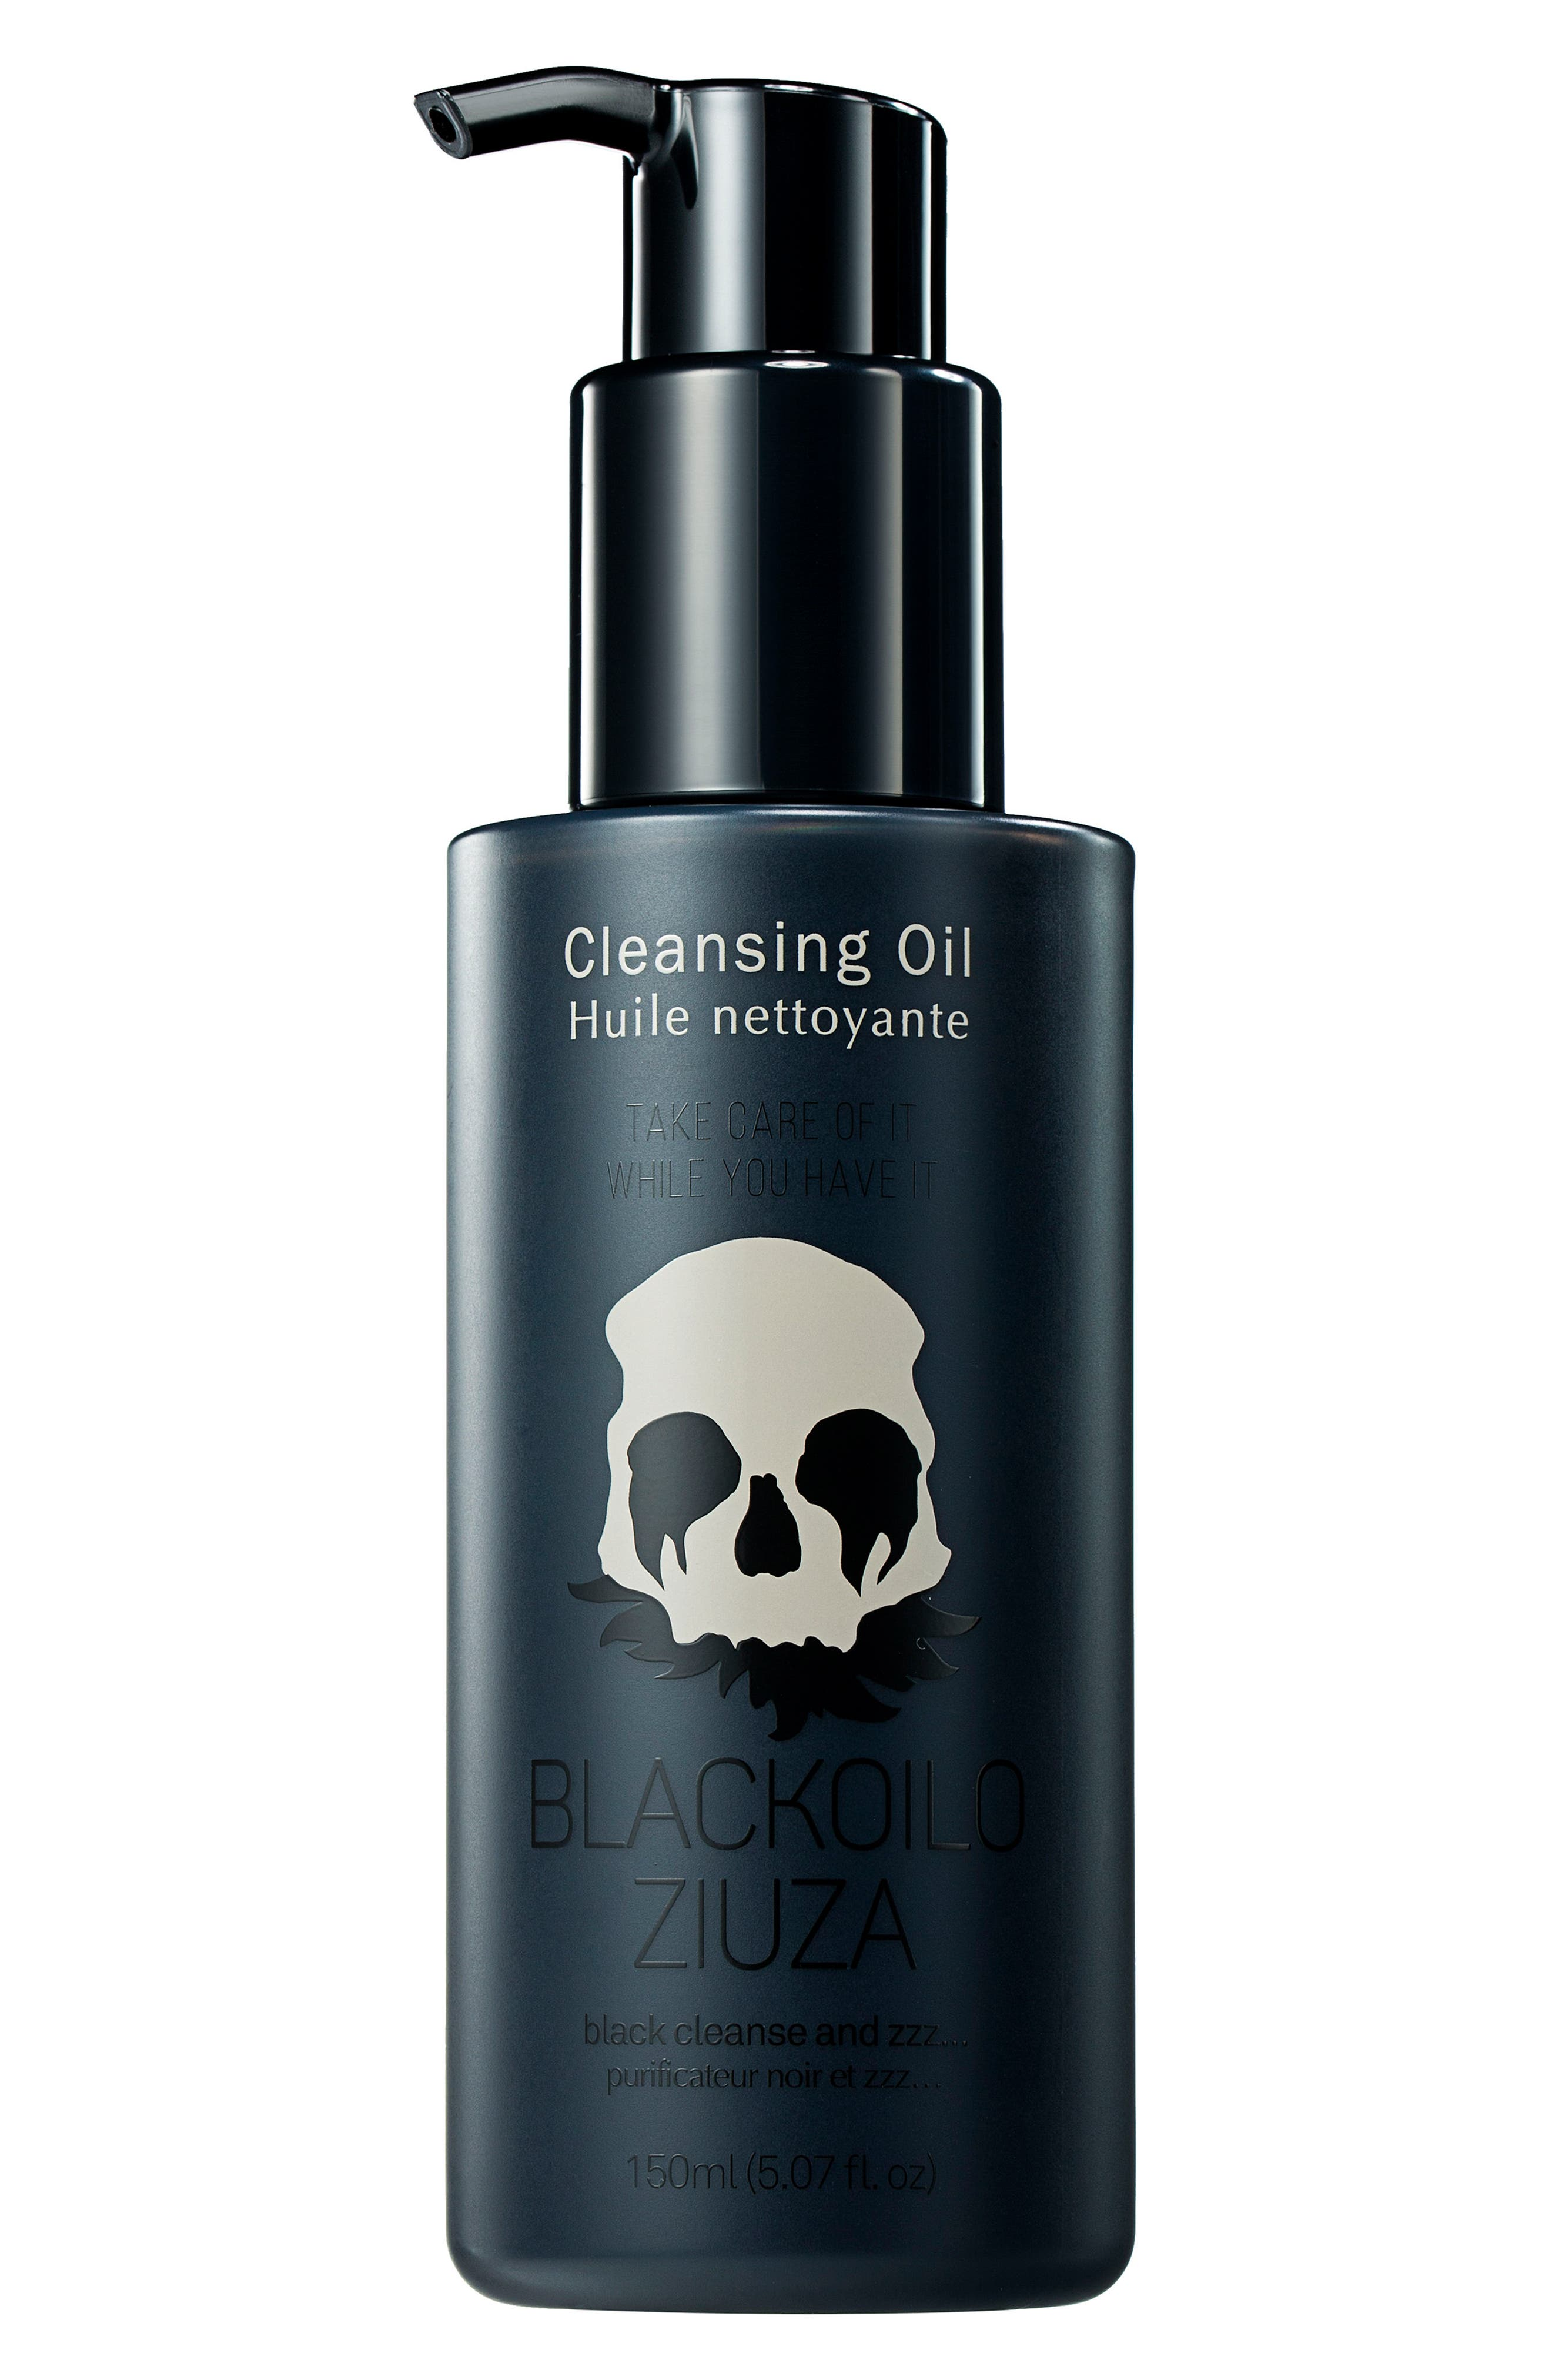 Blackoiloziuza Makeup Removing Cleansing Oil,                         Main,                         color, None